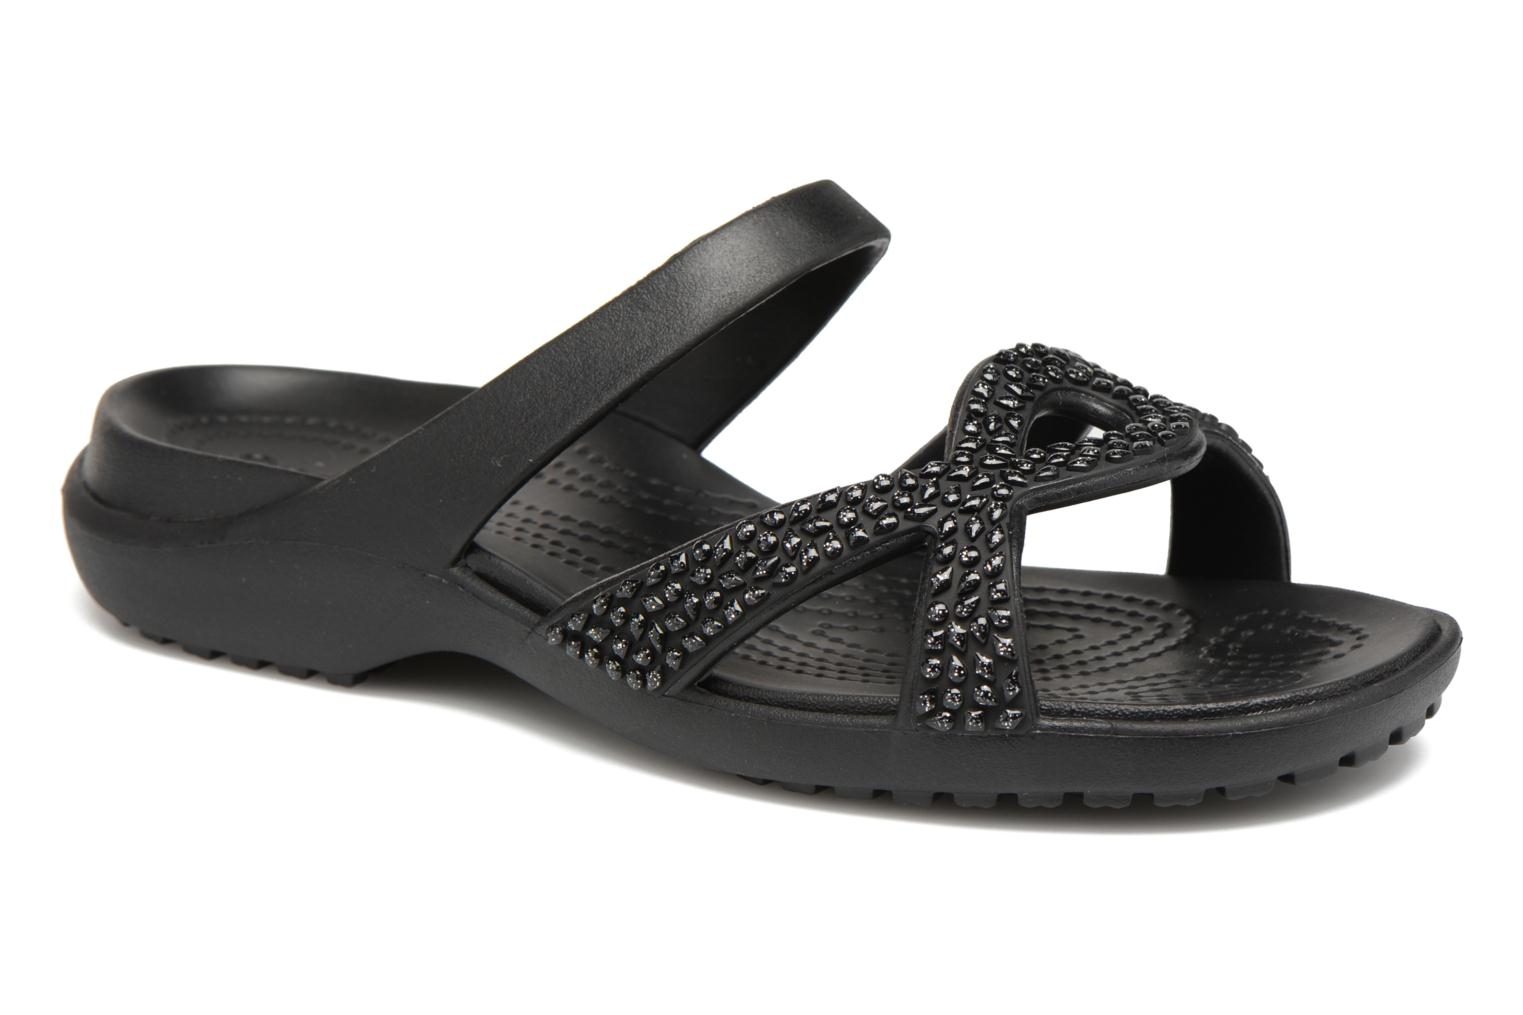 0d482710dfb2 ... Mules clogs Crocs Meleen Twist Diamante Sandal Black detailed view Pair  view later e30bd d361e  Crocs Womens Cleo Exclusive Sandals ...